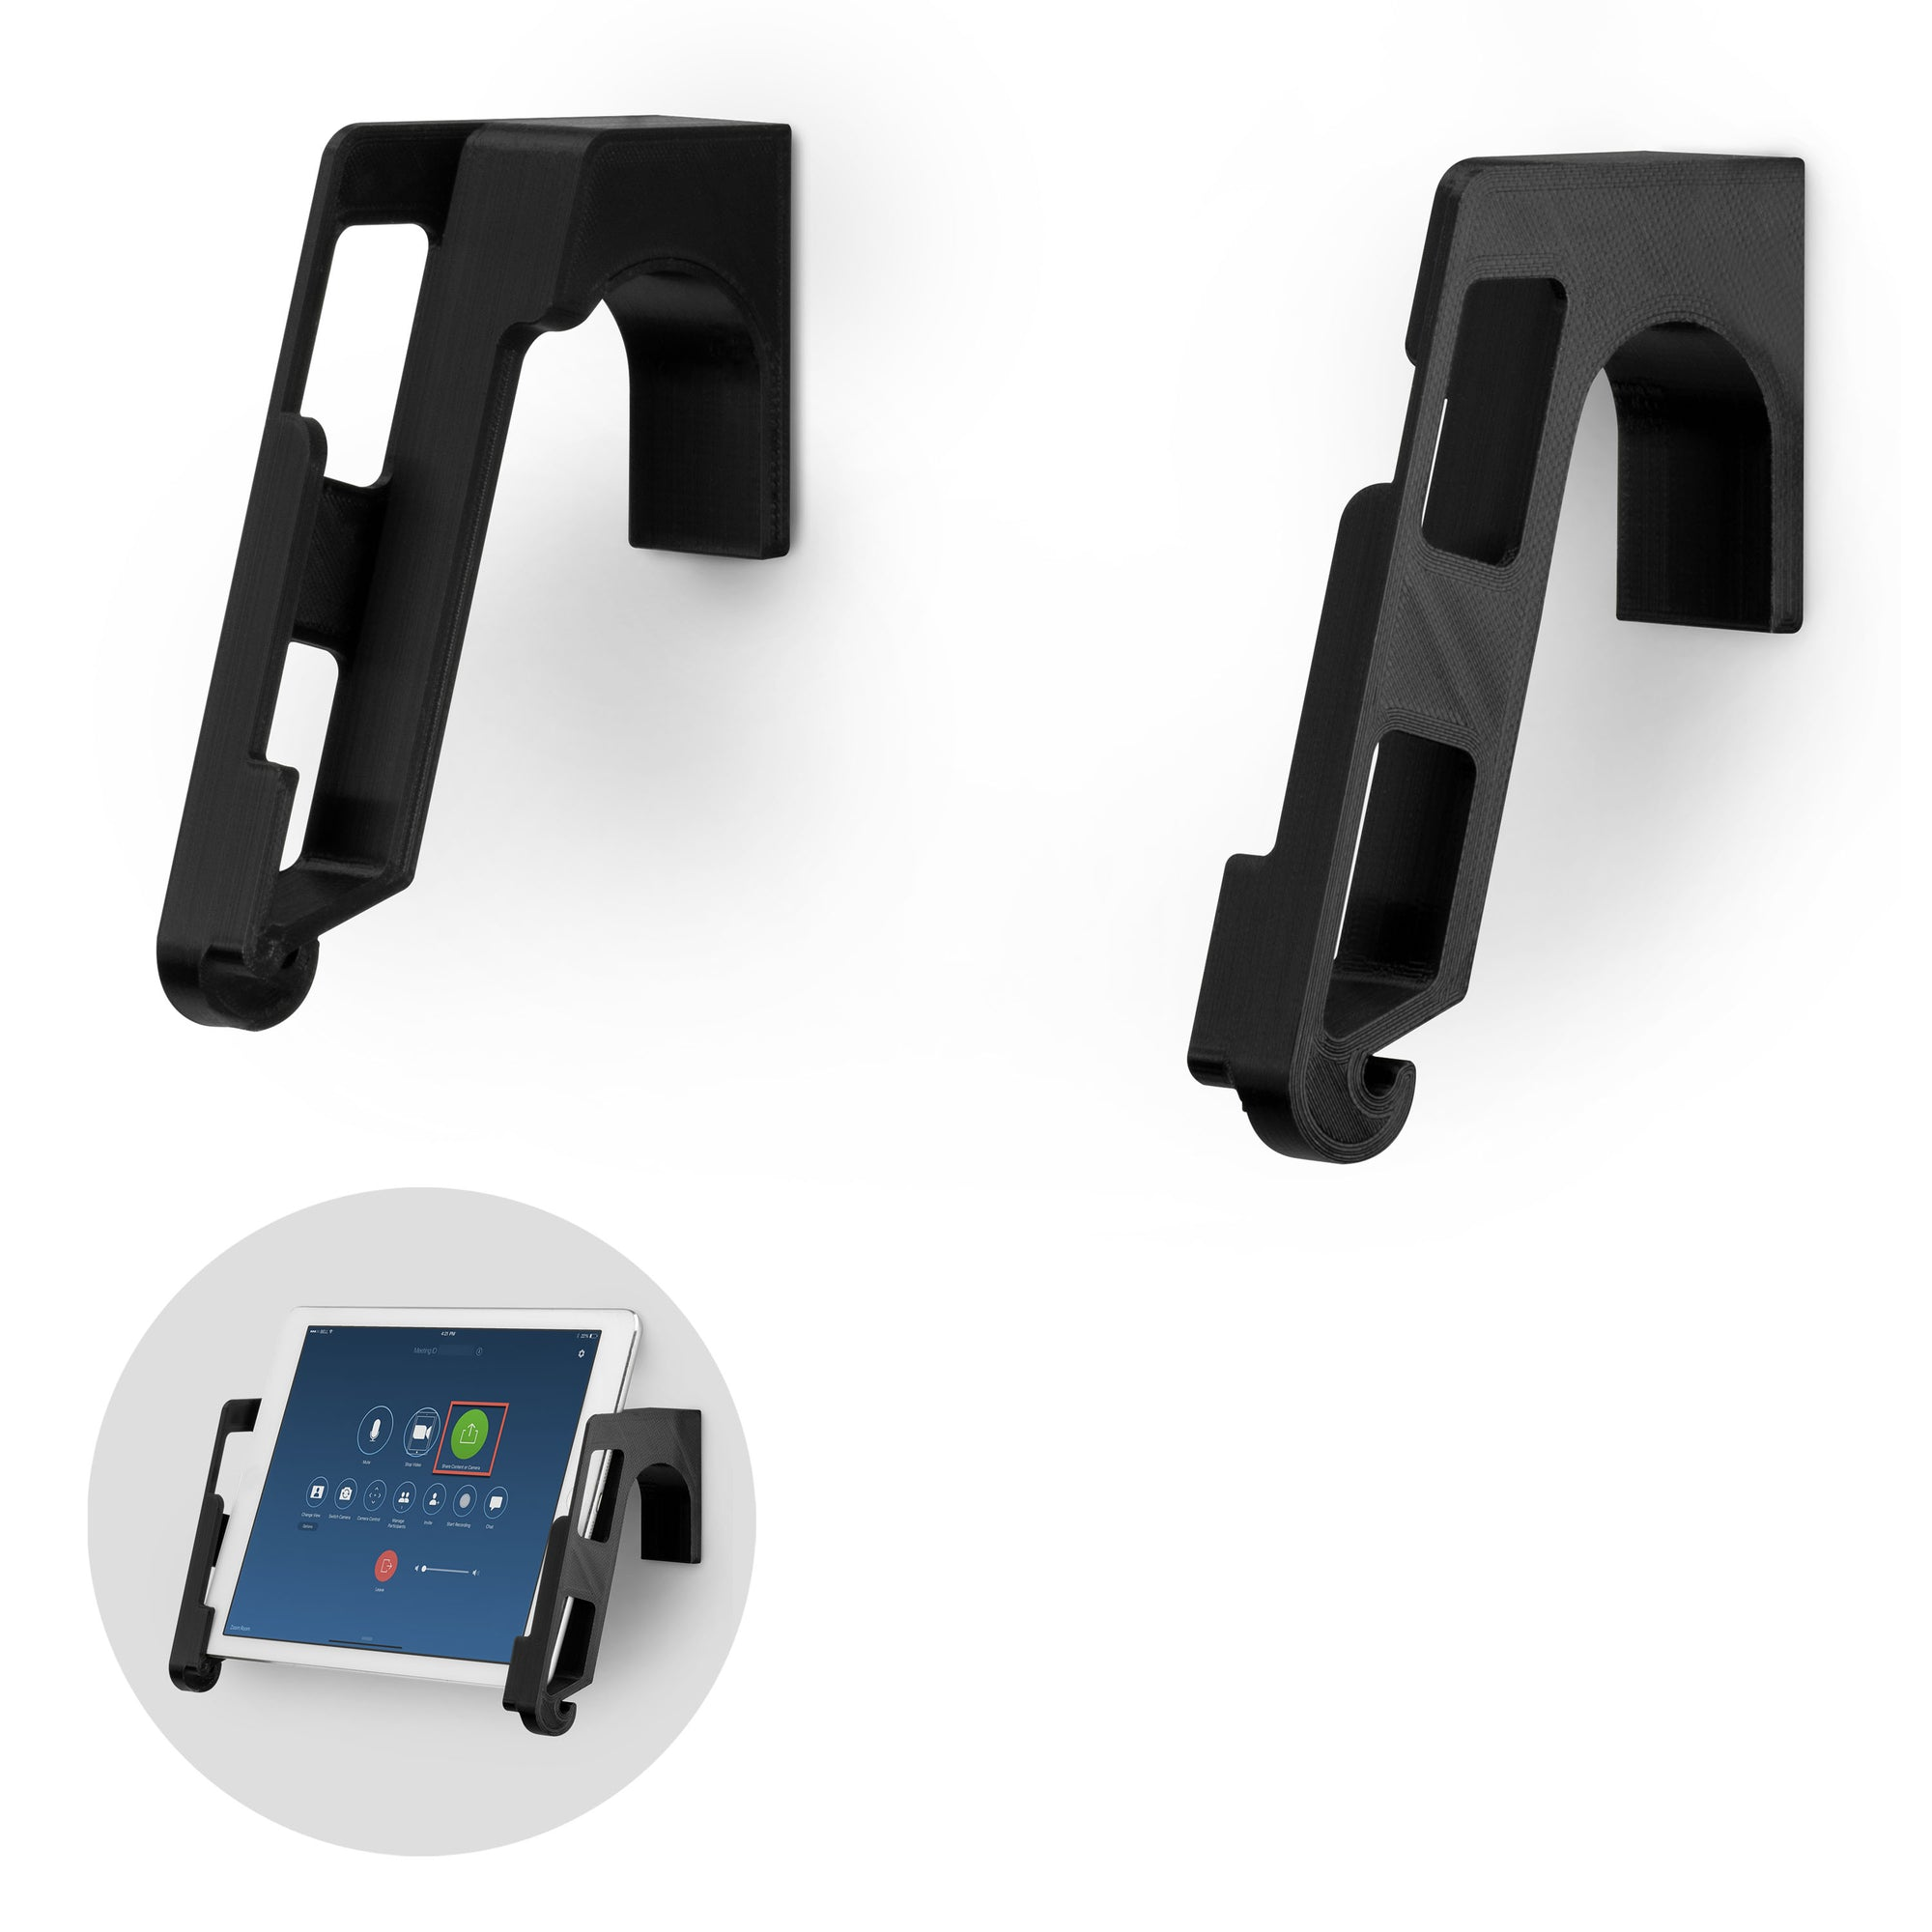 Universal Wall Mounted iPad and Android Tablet Stand Hanger Holder - TWM02